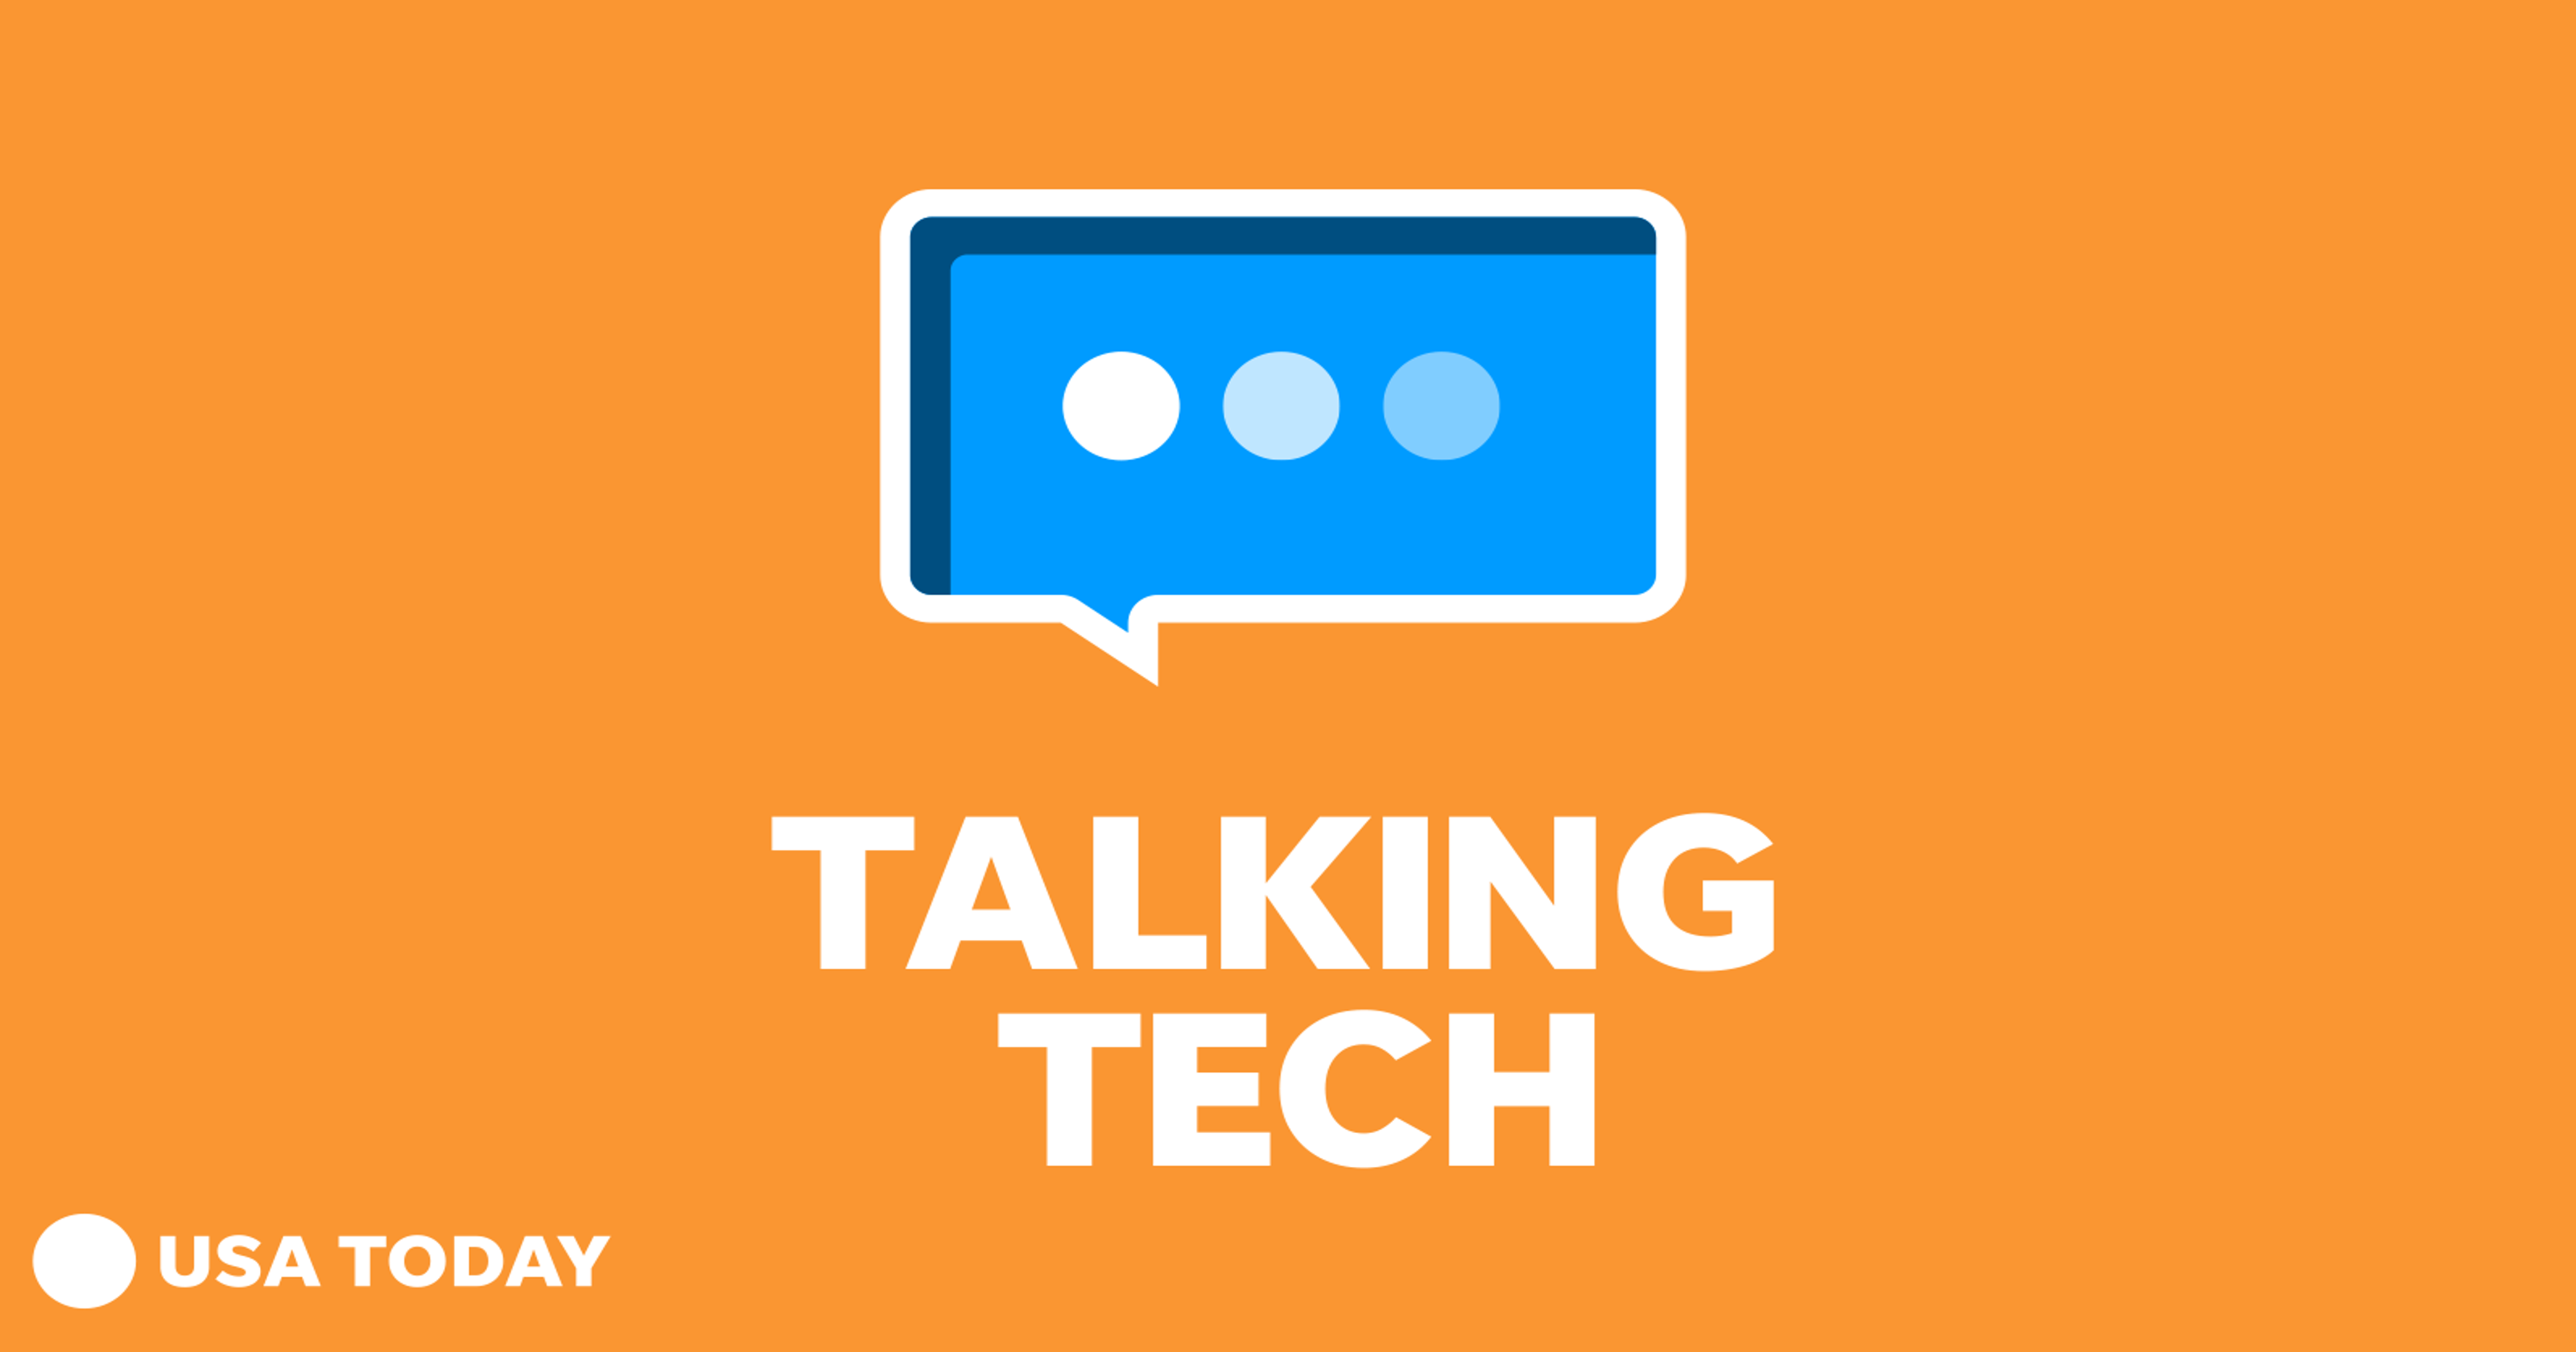 How to listen to Talking Tech podcast